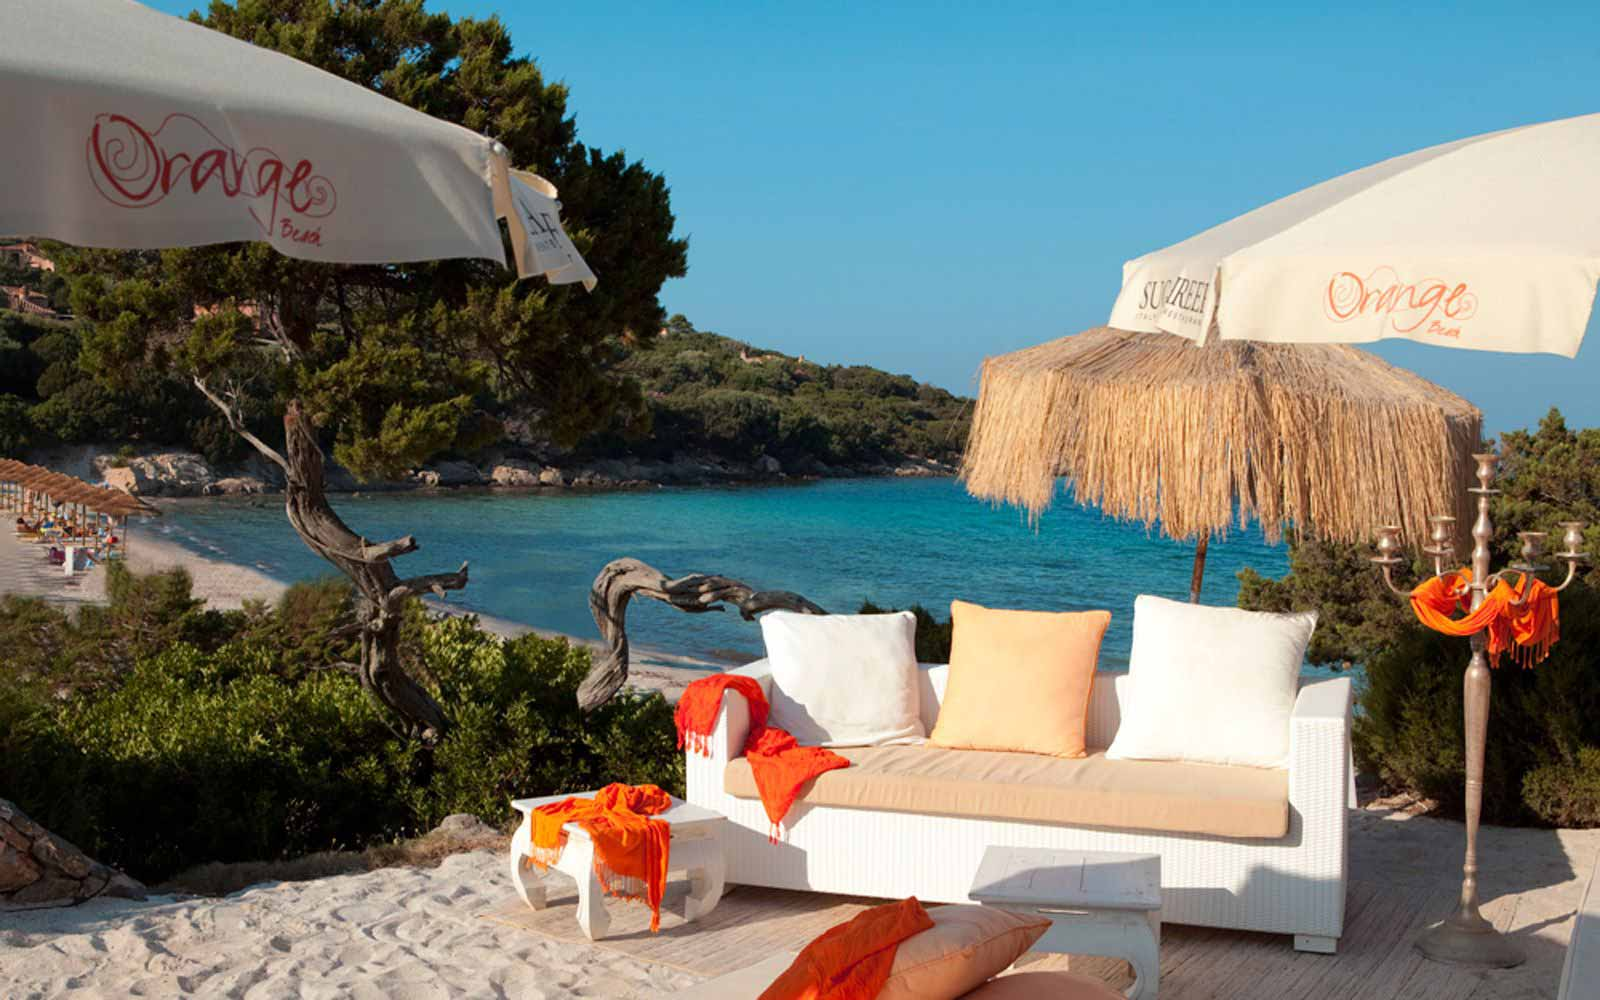 Orange beach at Grand Hotel in Porto Cervo